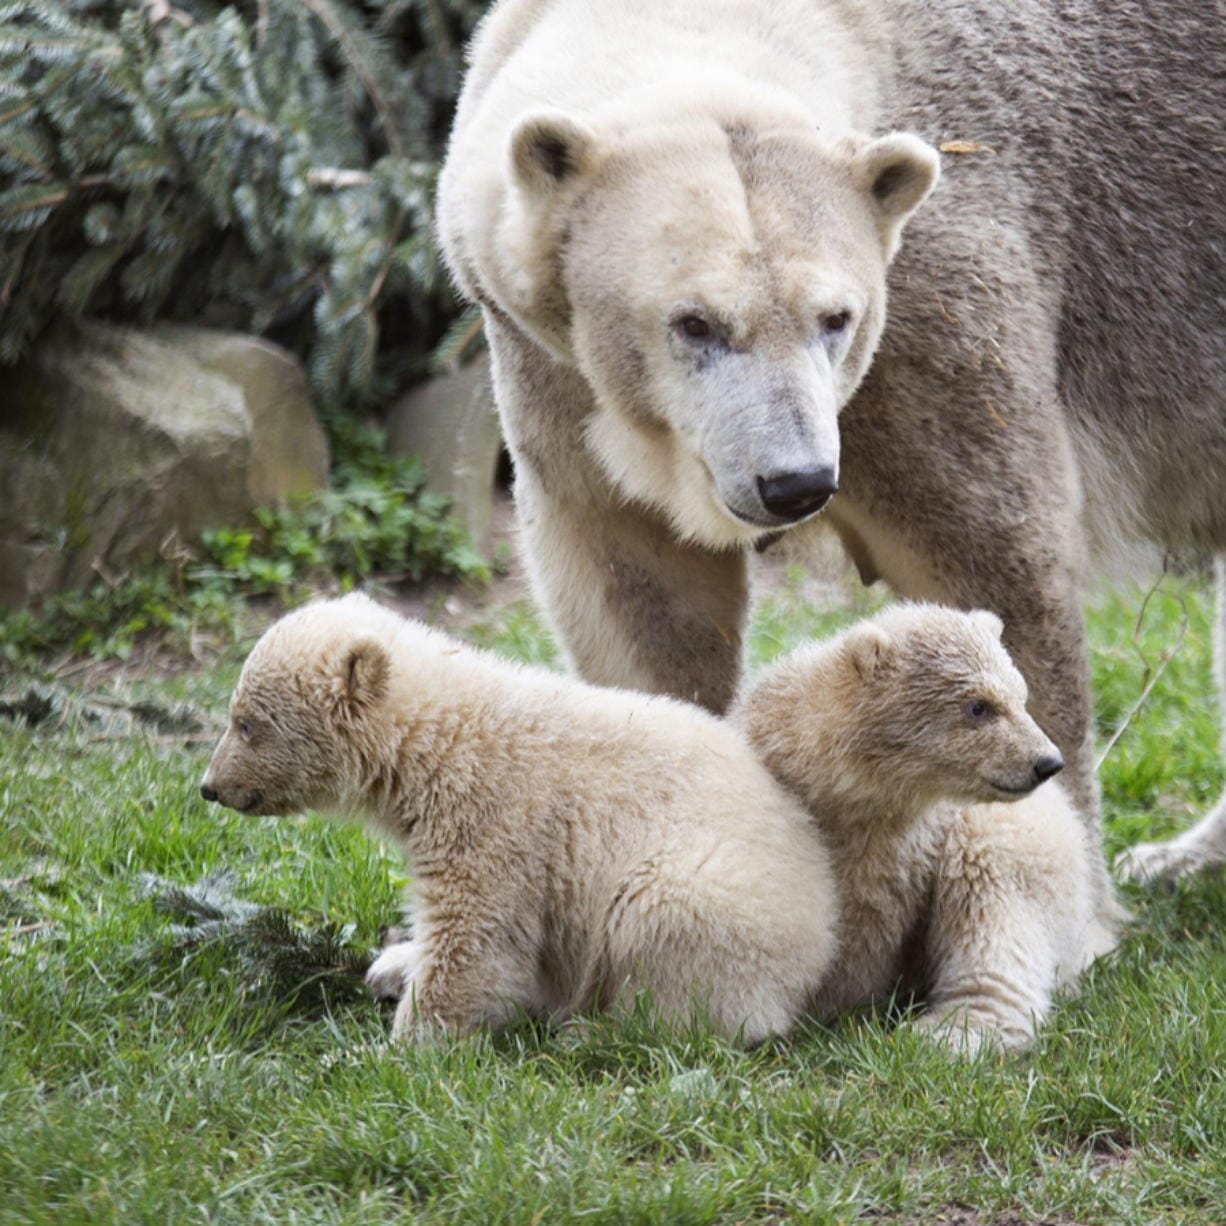 Two polar bear cubs make their debut Wednesday at the Ouwehands Zoo Rhenen in Rhenen, Netherlands, without the public because of coronavirus restrictions. (tonny hoevers/Ouwehands Zoo Rhenen)